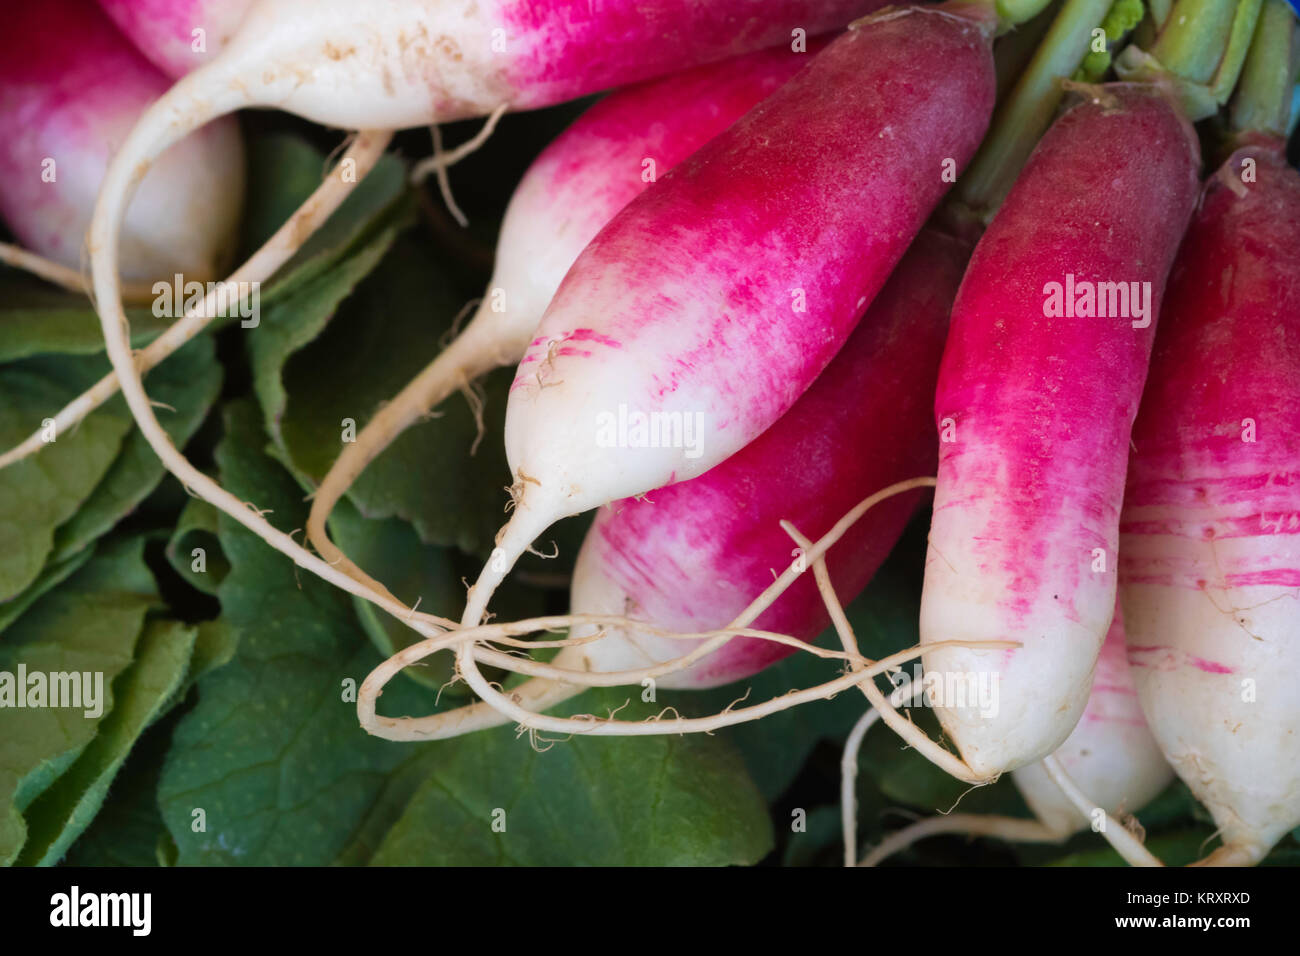 close up view of a bunch of French breakfast radishes - Stock Image